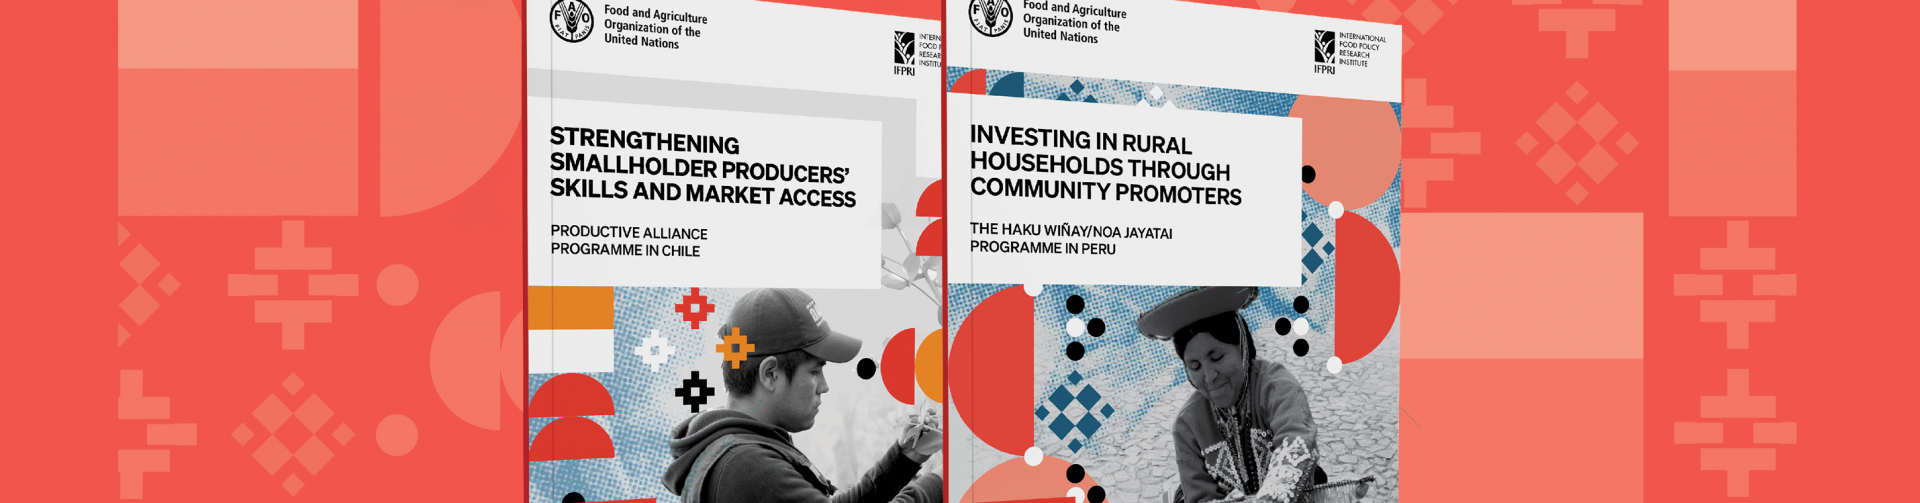 Investing in farmers: Latin America and Caribbean share successes in agriculture human capital development